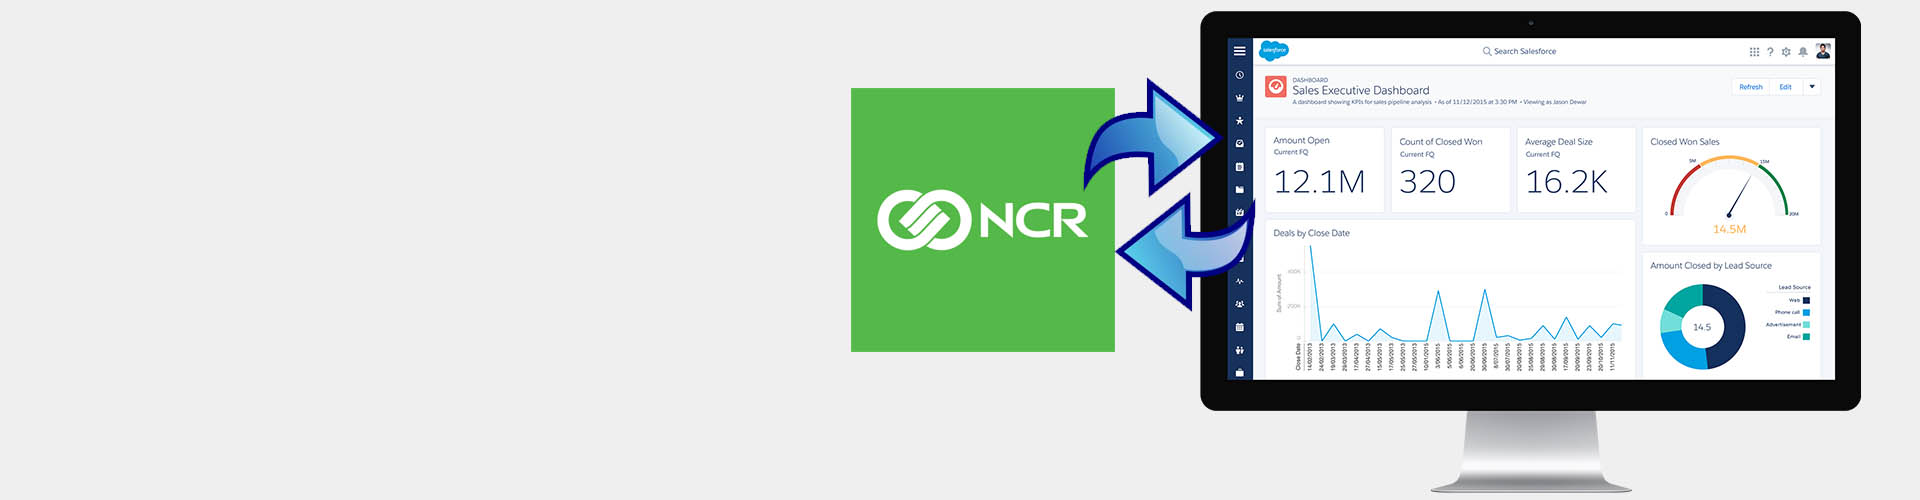 attractions and events pos with ncr counterpoint